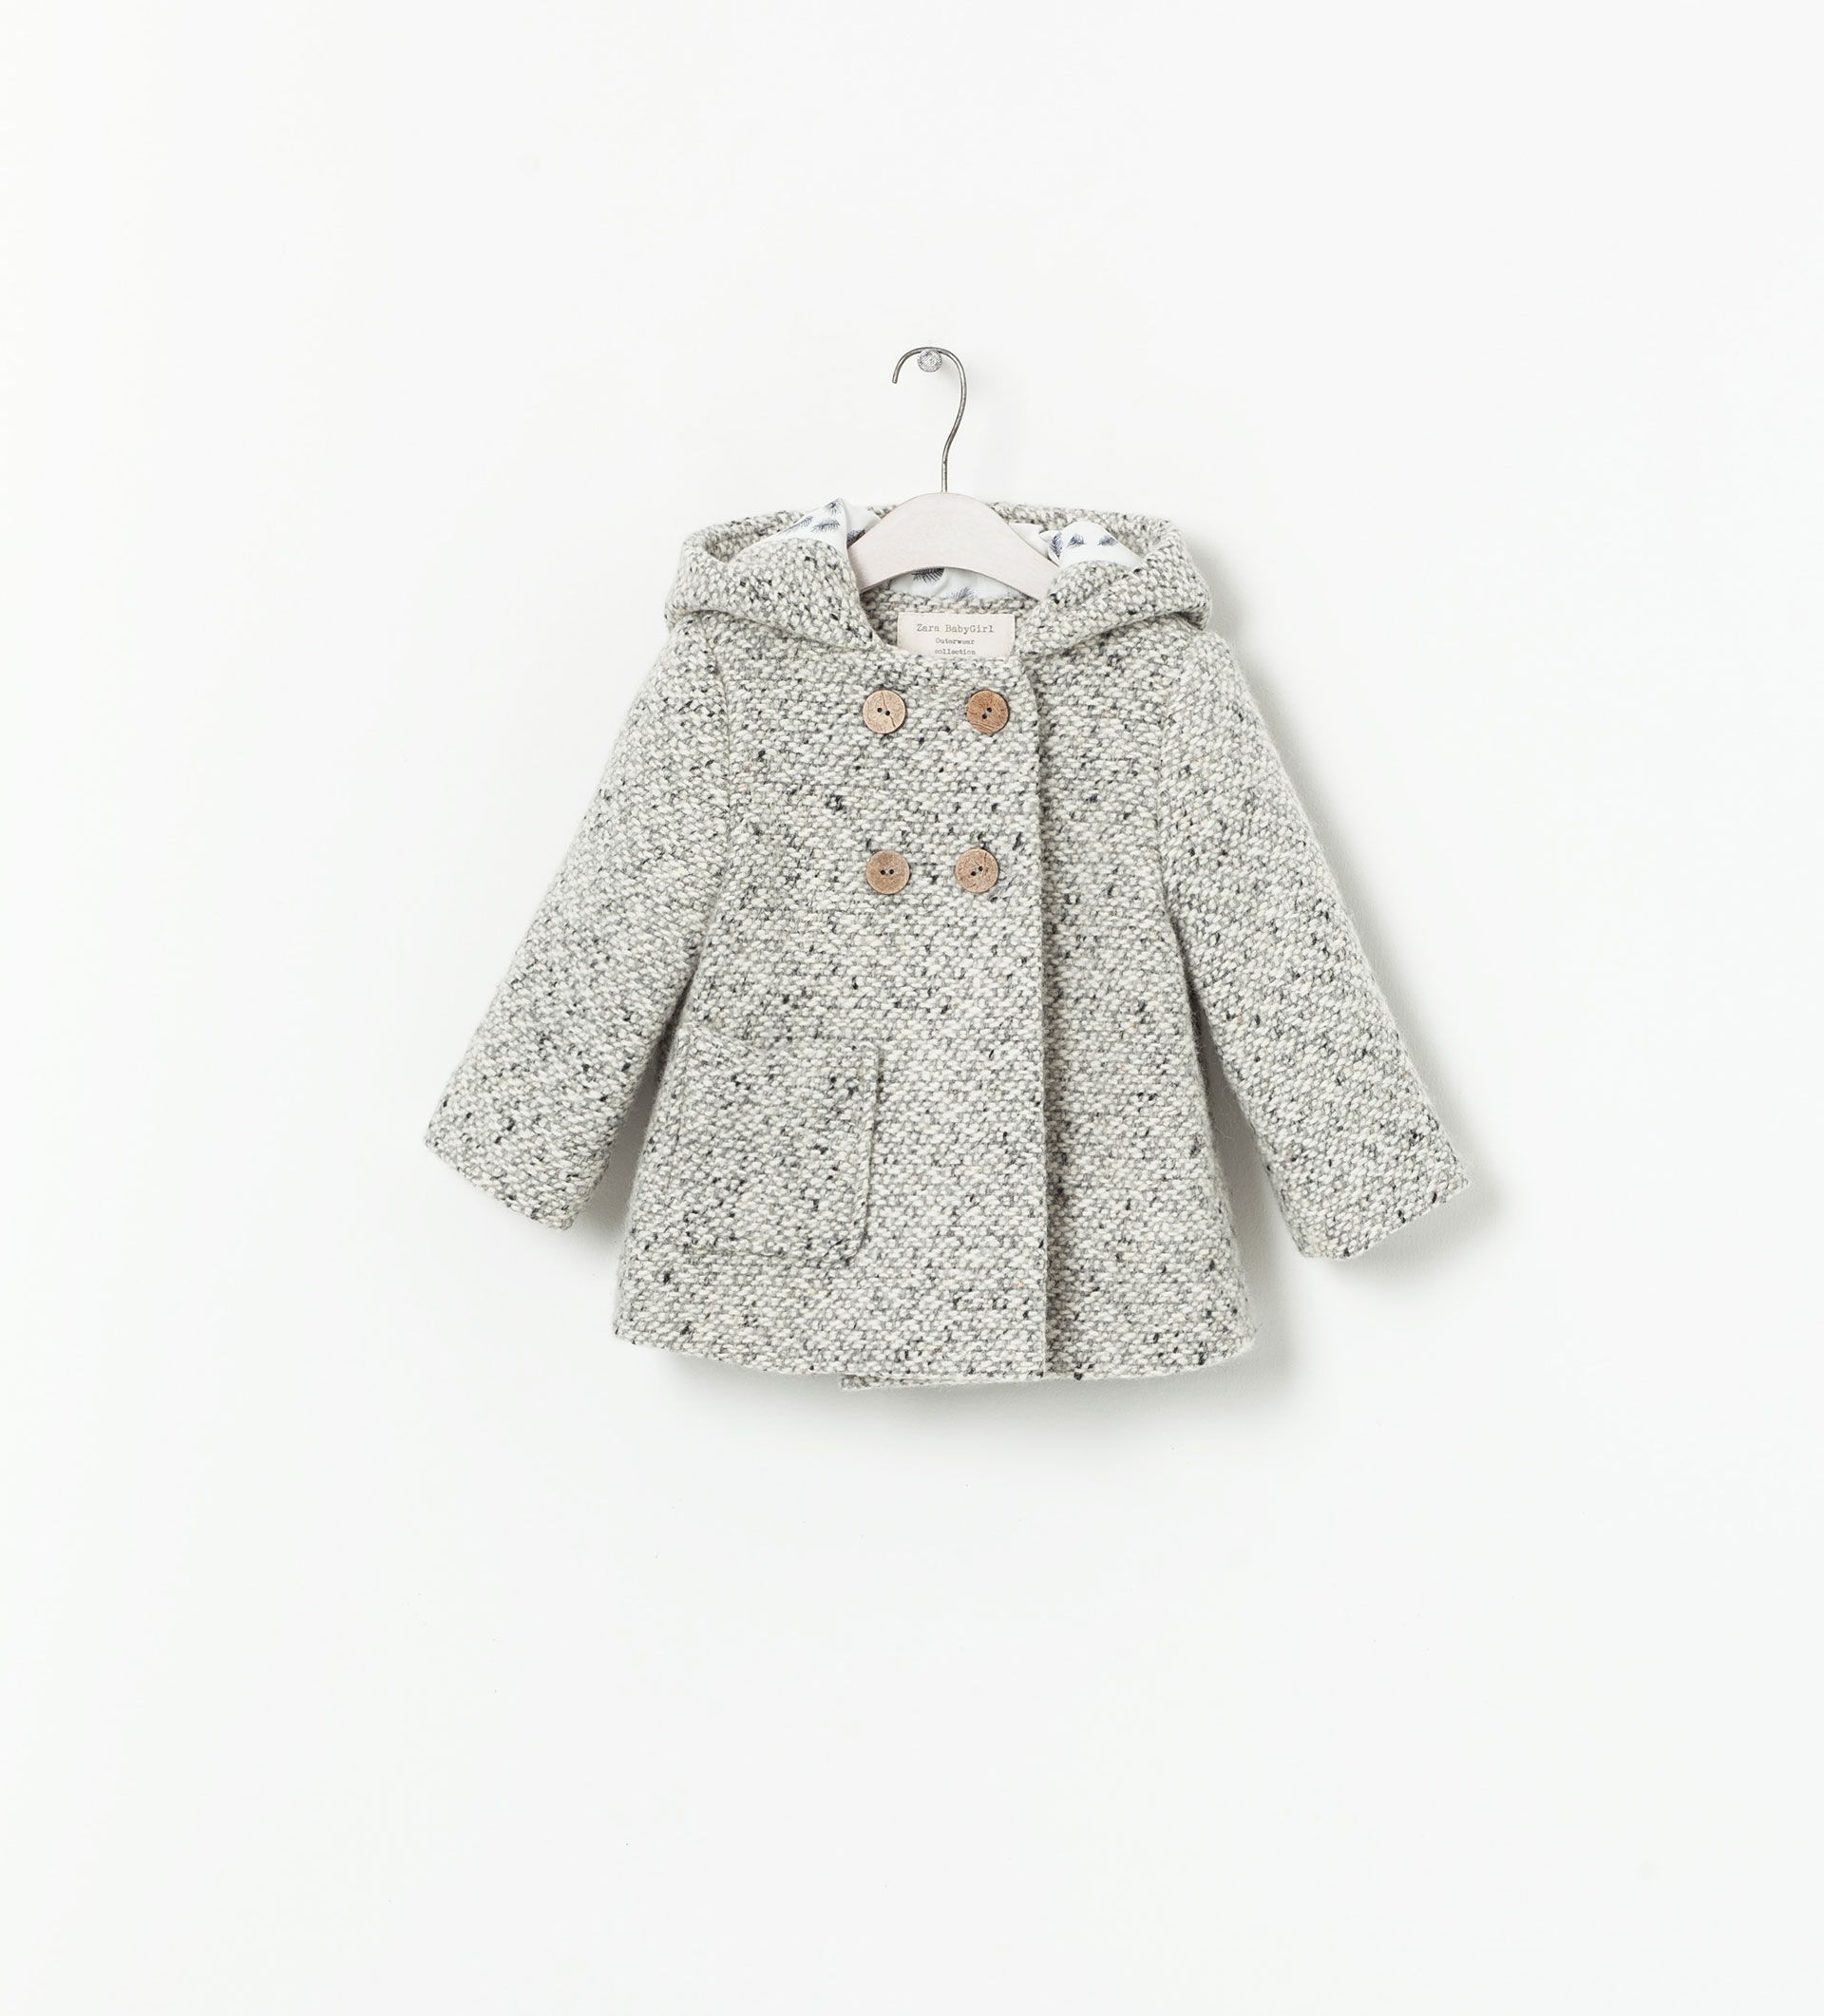 Hooded Coat With Ears Coats Baby Girl 3 36 Months Kids Zara United States Ropa De Chicas